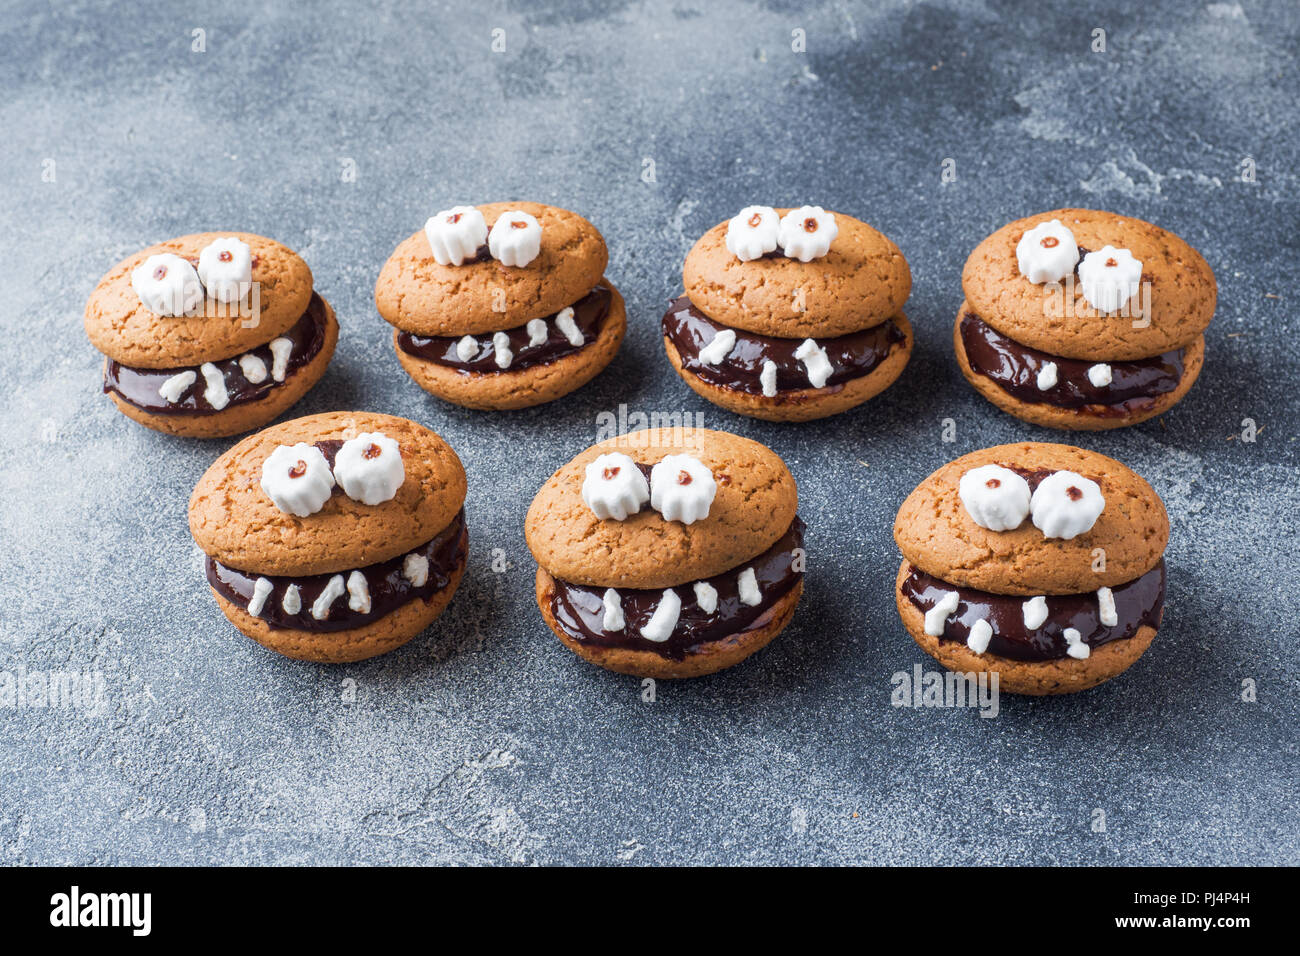 Cookies with chocolate paste in the form of monsters for Halloween. Stock Photo